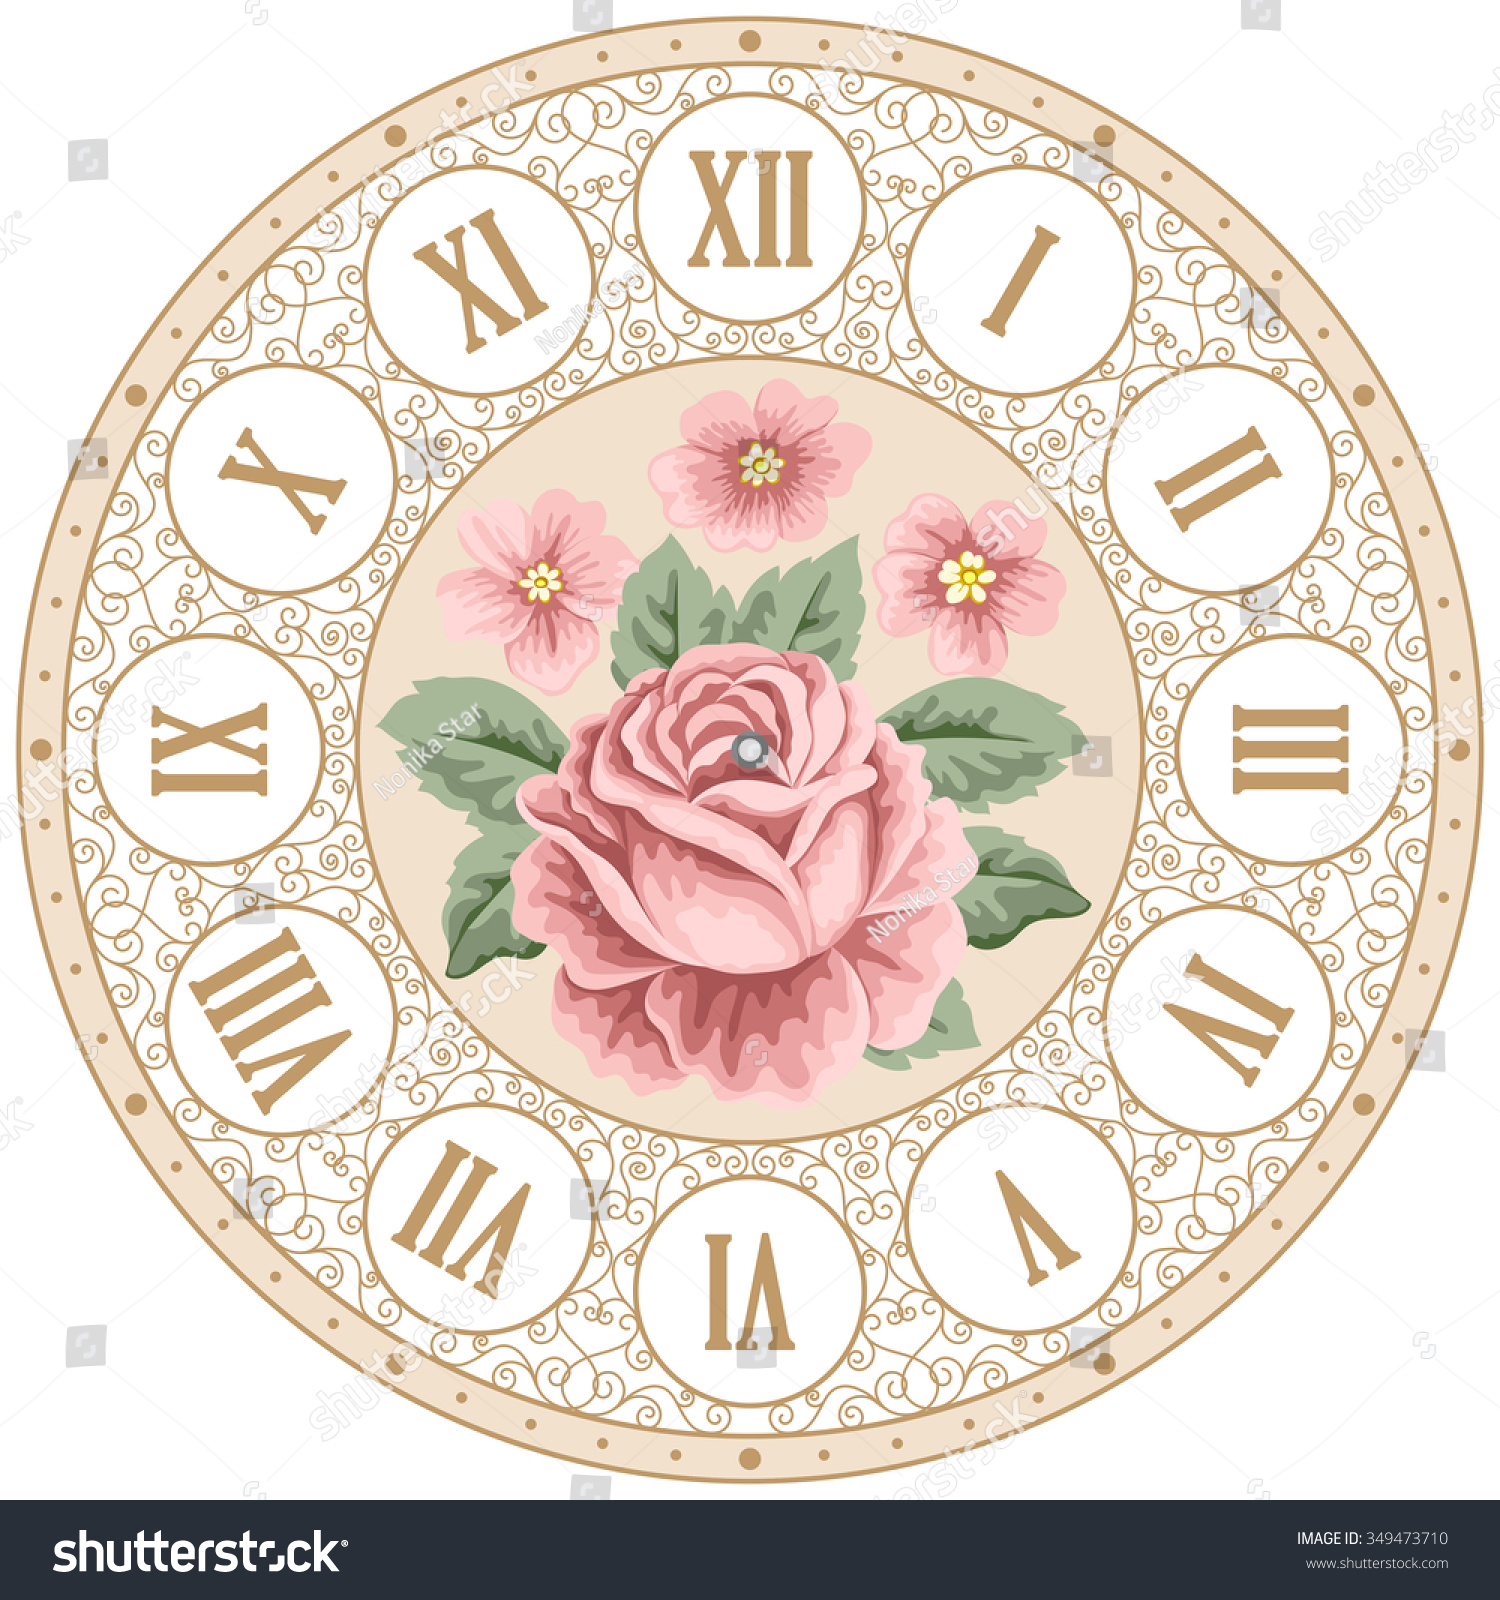 Vintage Clock Face With Hand Drawn Colorful Roses And